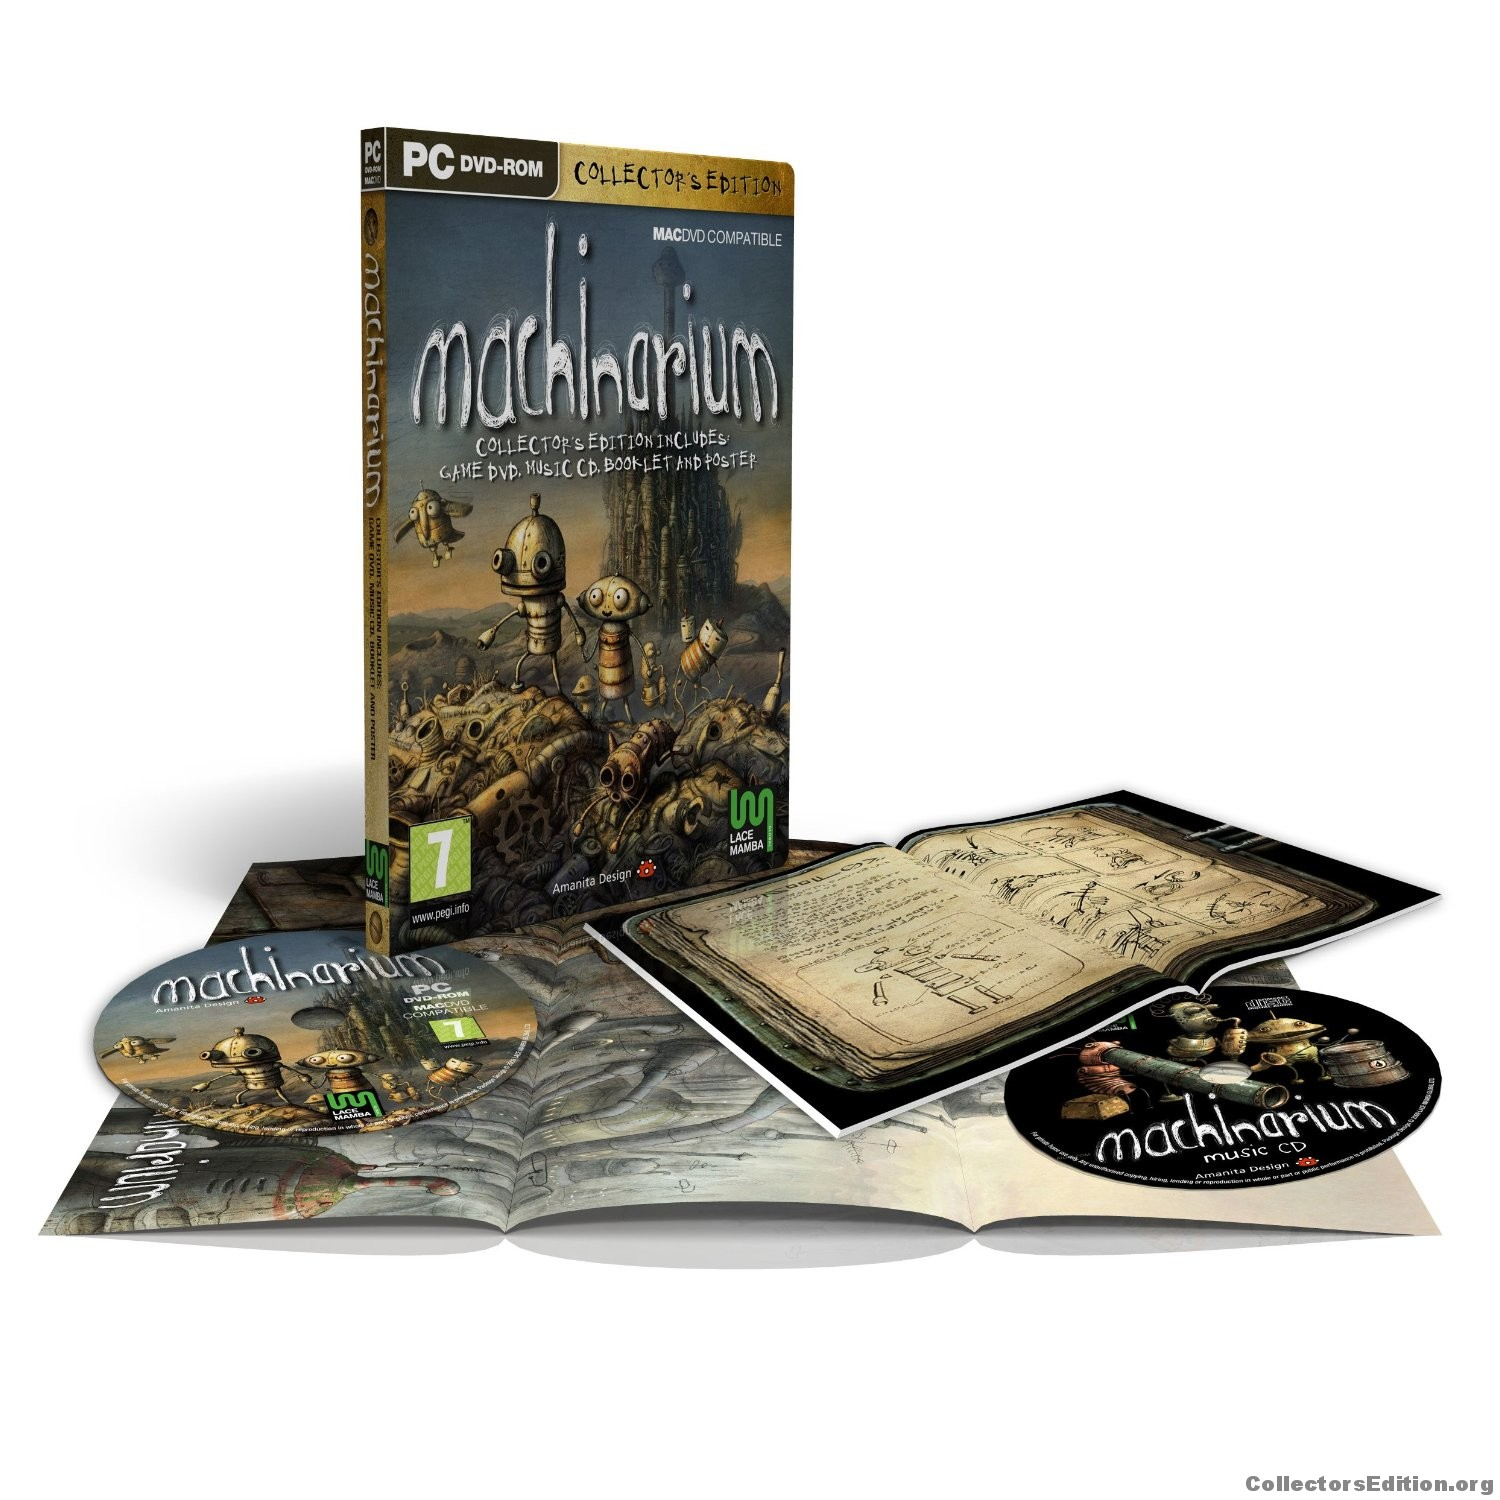 IMAGE(http://collectorsedition.org/uploads/2013/03/Machinarium.jpg)